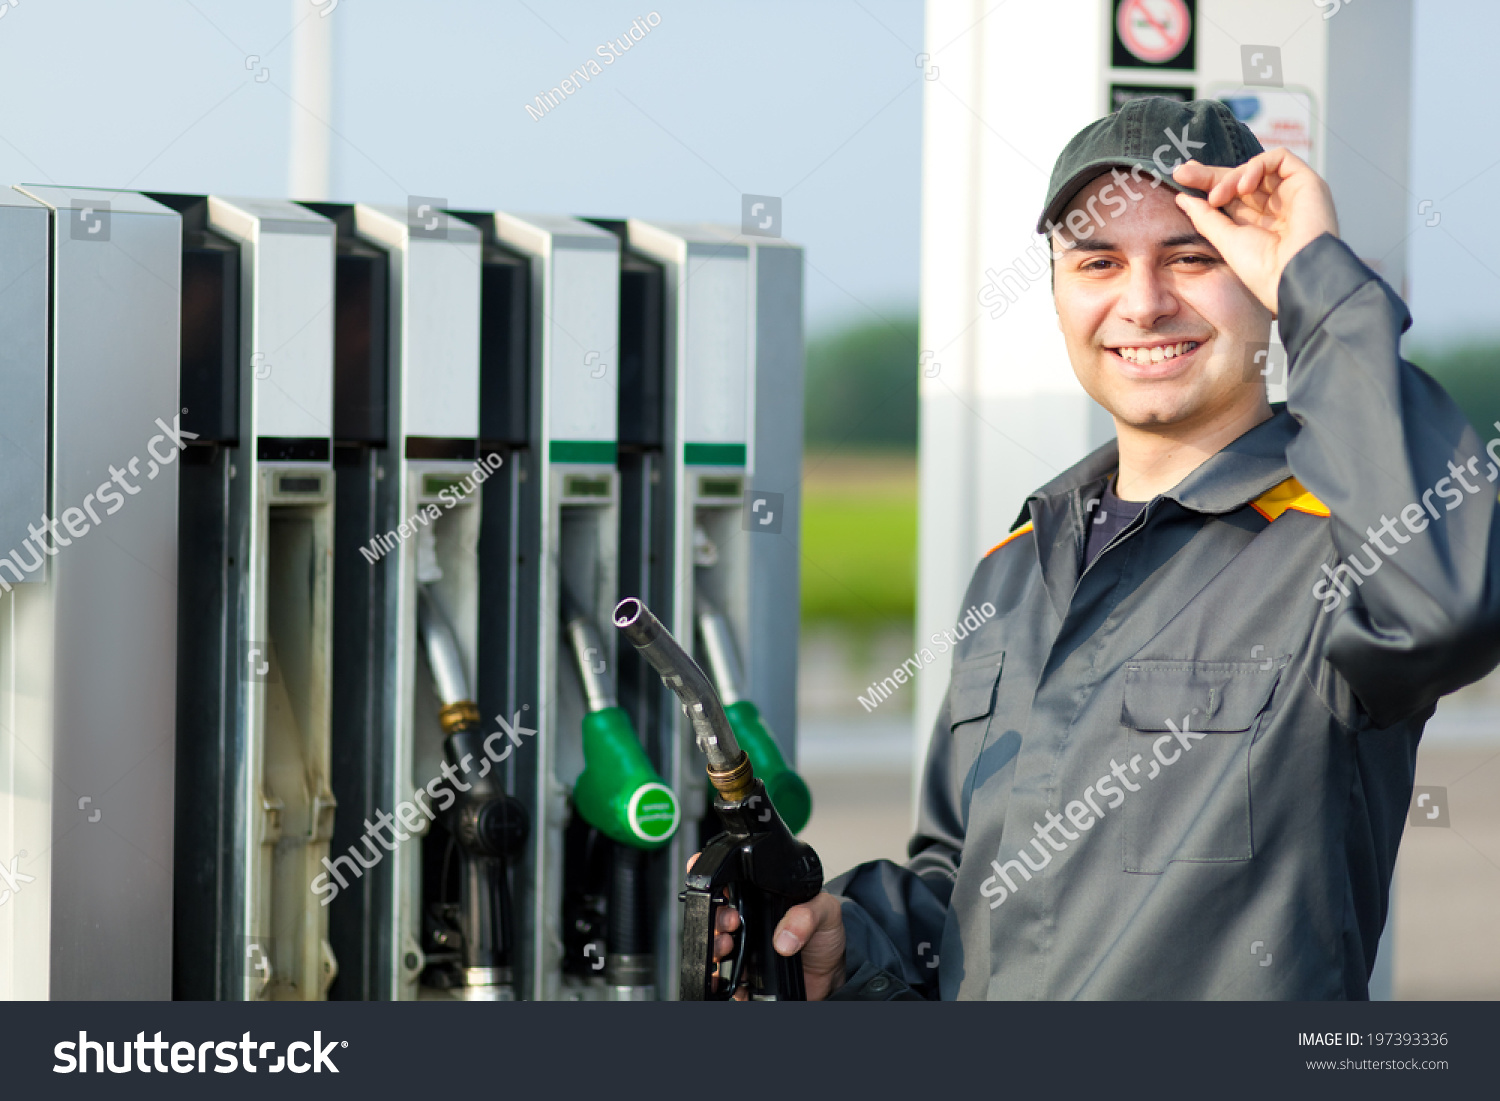 Gas Station Attendant Work Stock Photo 197393336 - Shutterstock